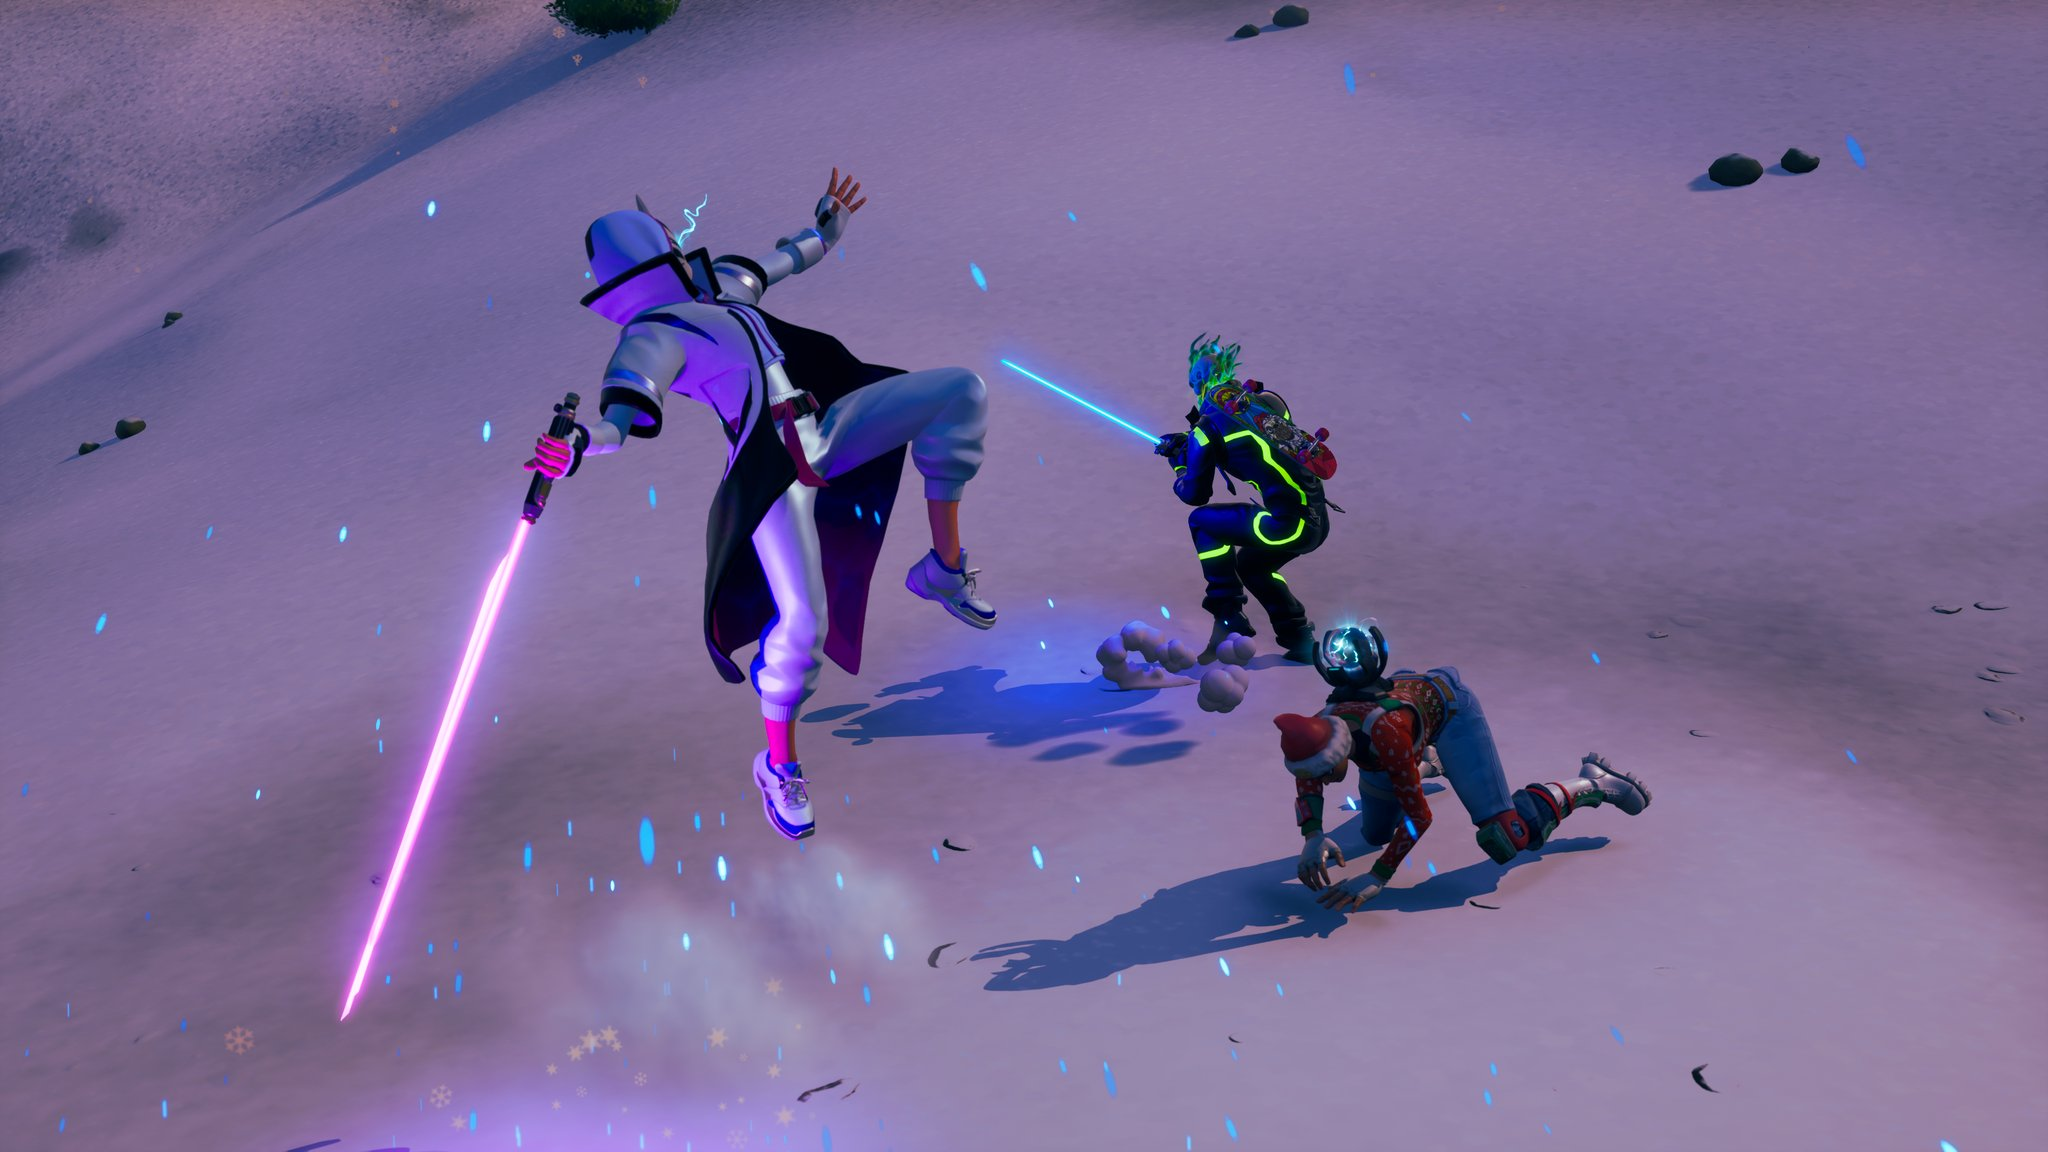 Lightsabers Weapon Removed from Fortnite